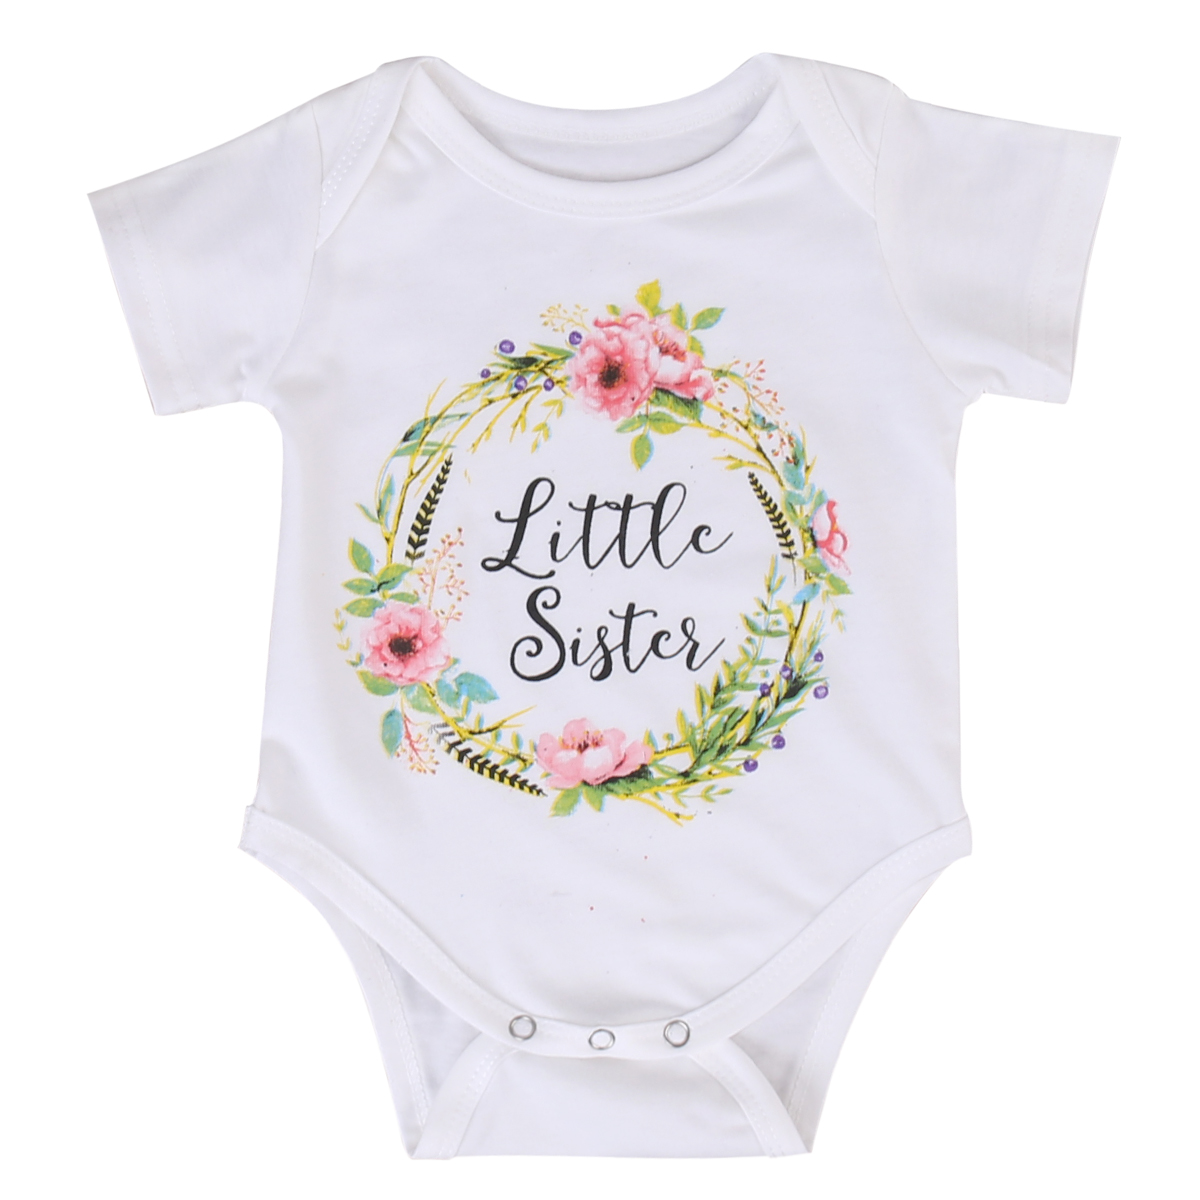 Baby Girls Jumpsuit Clothes Kid Clothing Bodysuits